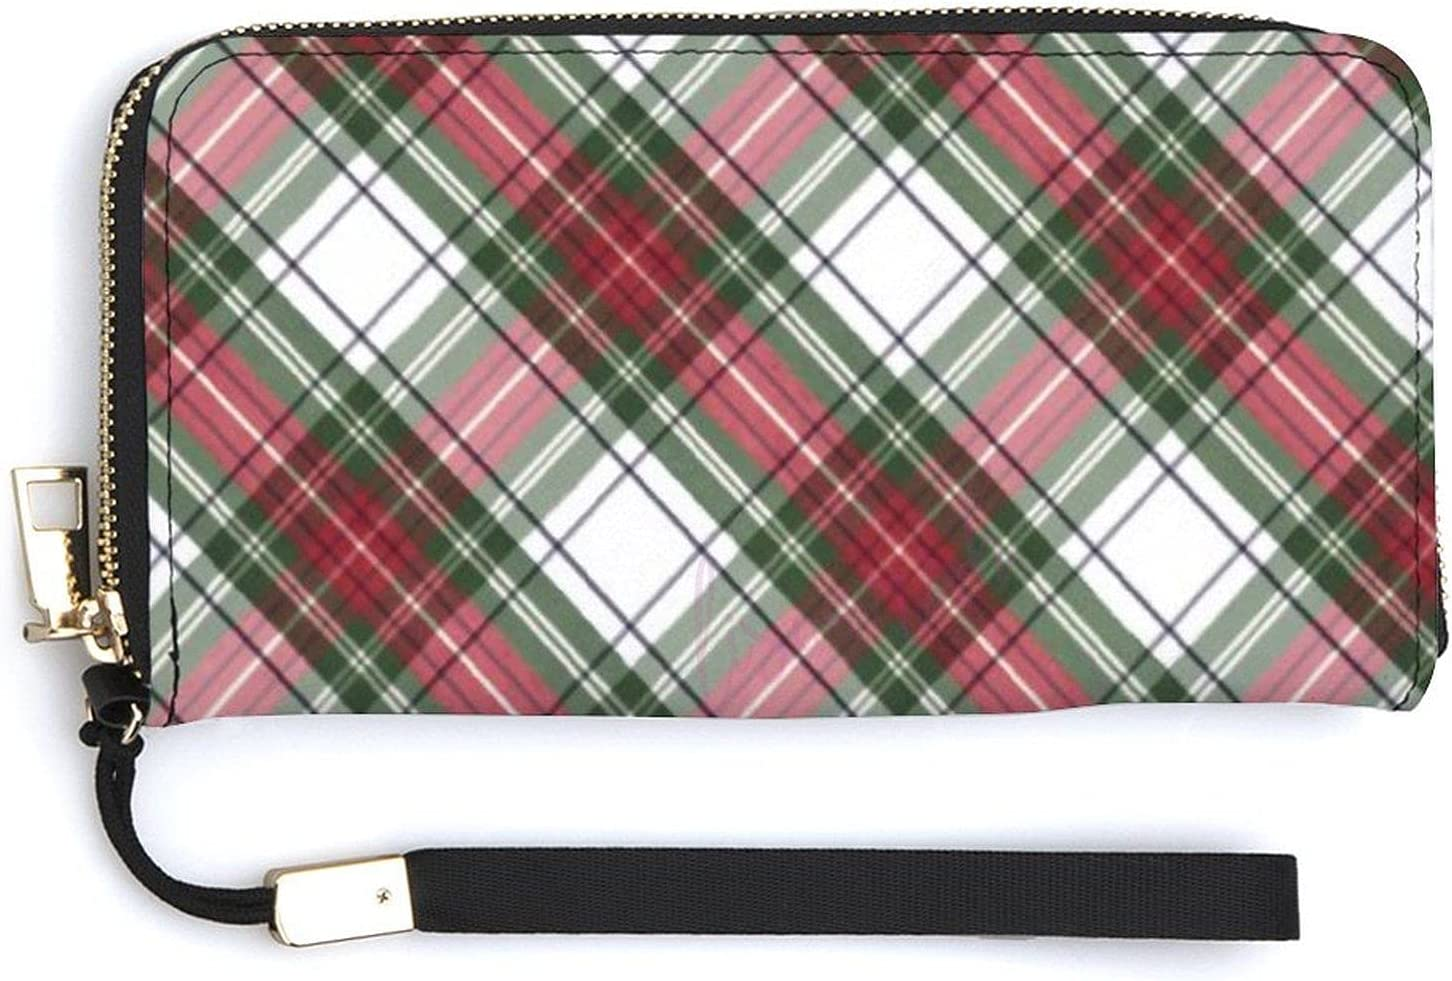 Wallets for Women PU Leather- Now on sale Red Zip Around White Jacksonville Mall Plaid Green